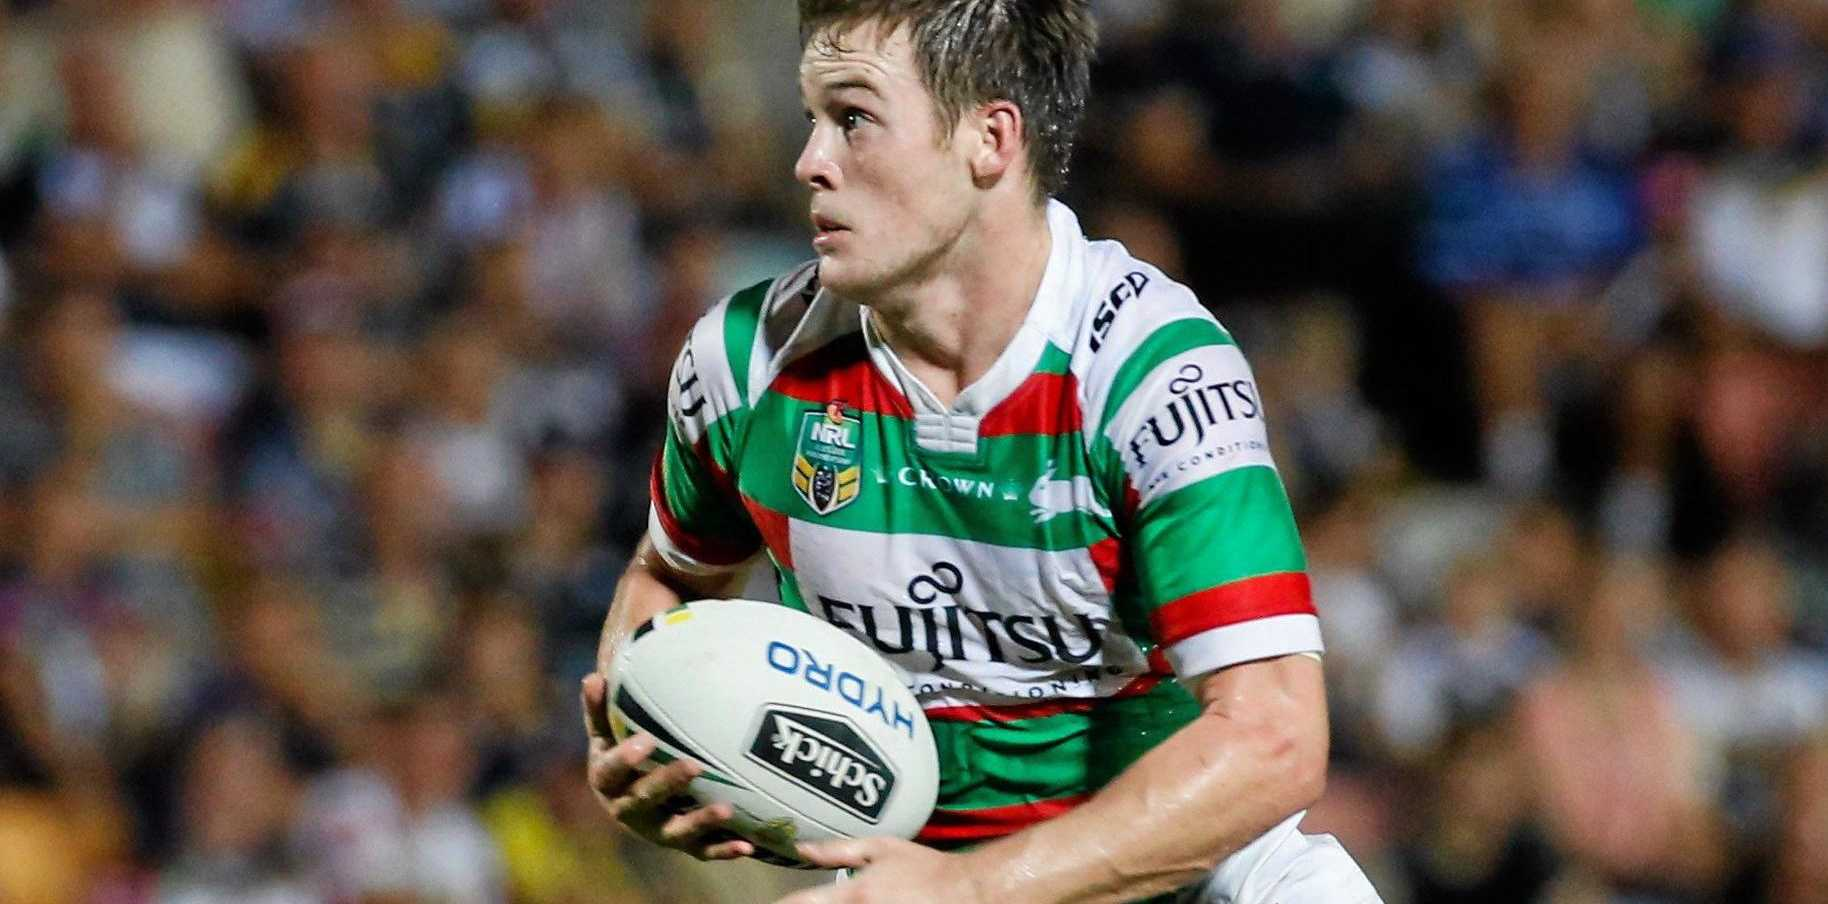 MOVING ON: Rabbitohs playmaker Luke Keary takes the ball towards the line.